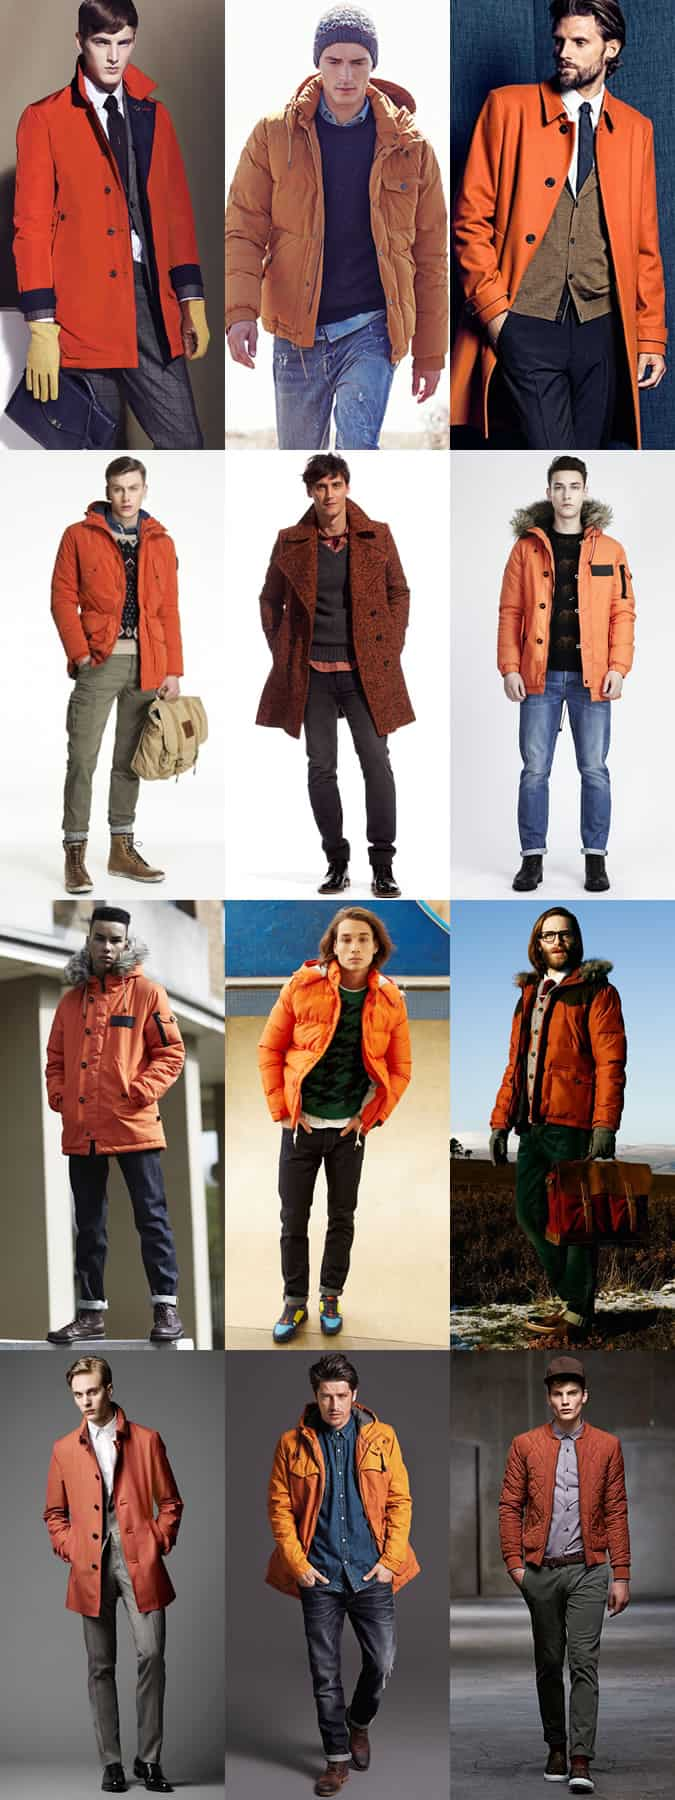 Men's Orange Outerwear/Coats/Jackets - Outfit Inspiration Lookbook